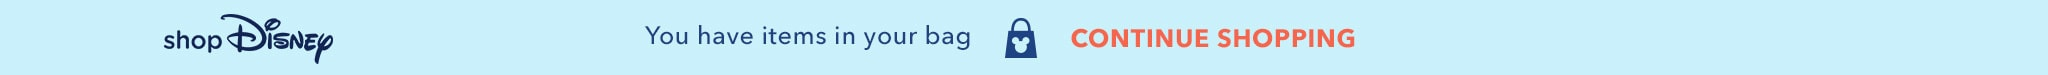 You have items in your shopDisney bag.